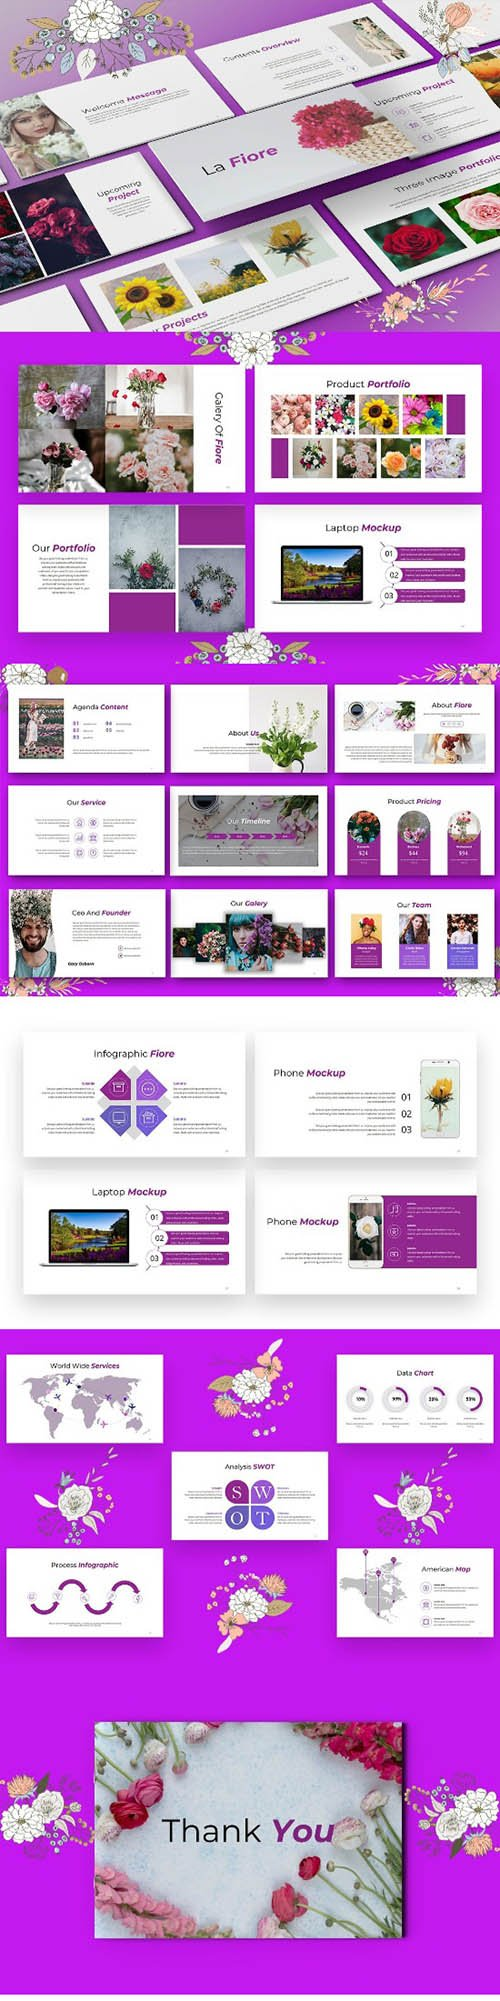 La Fiore - Elegant PowerPoint , Keynote and Google Slides